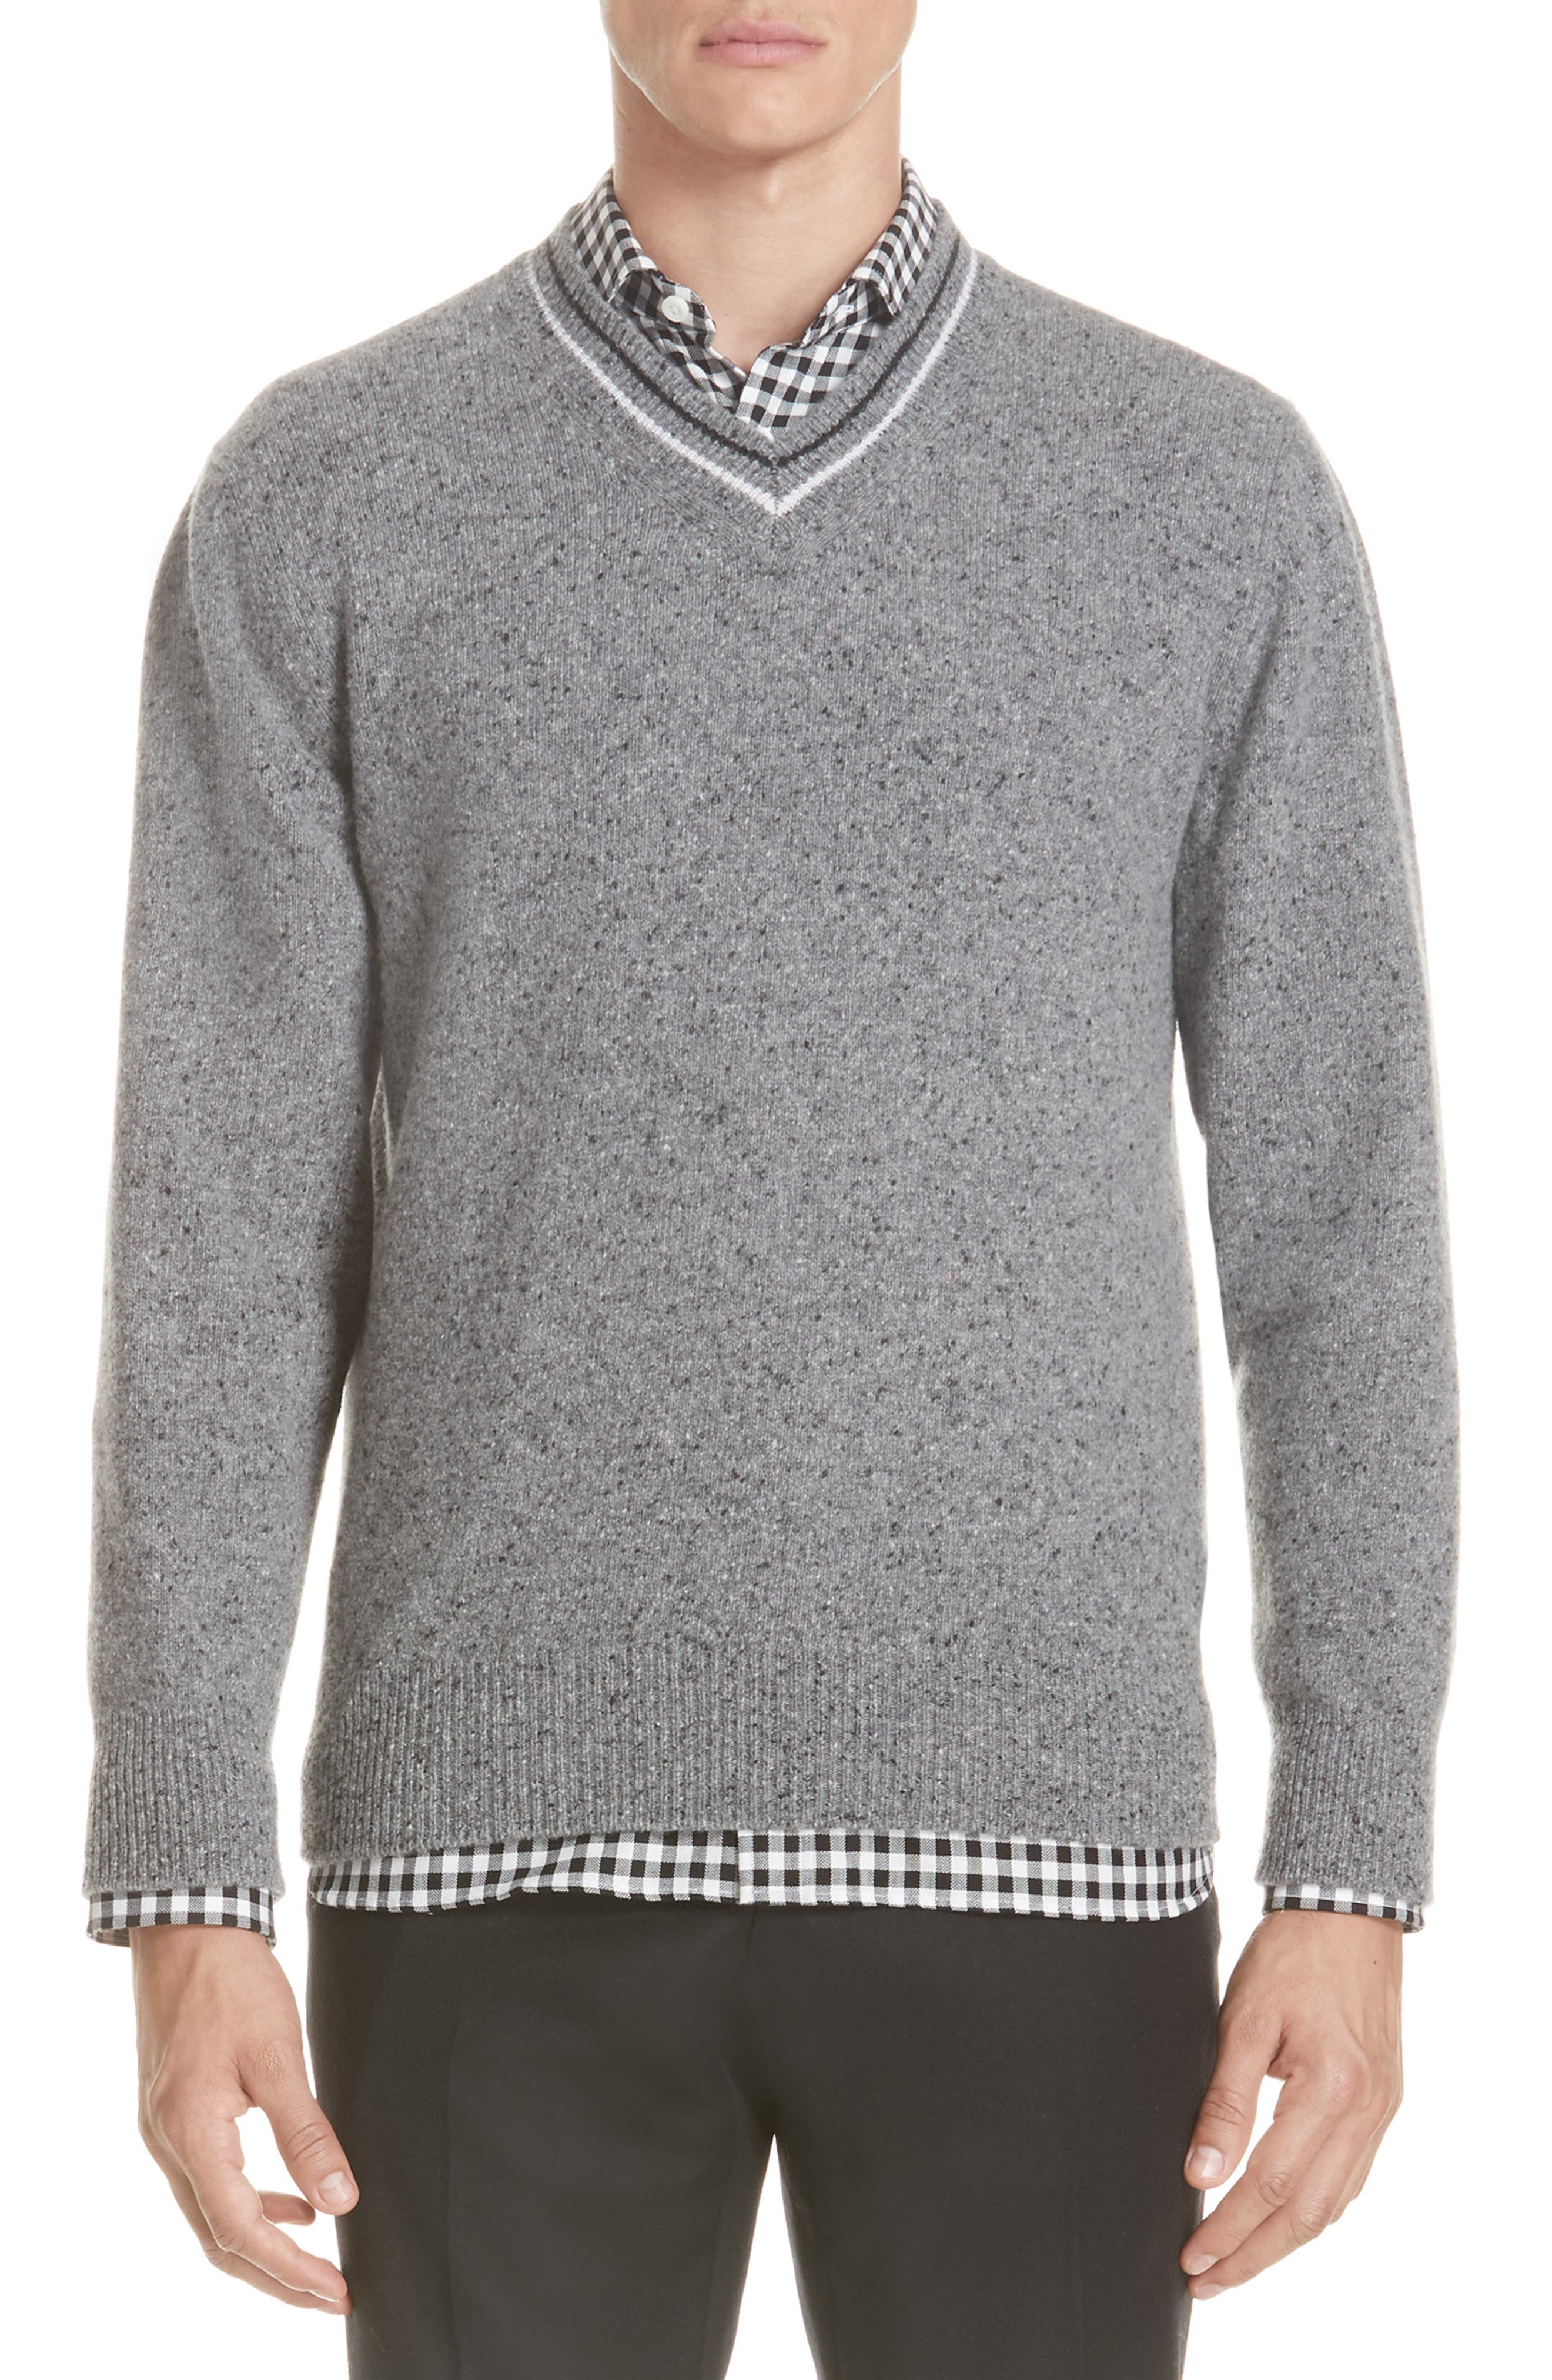 Trim Fit V-Neck Wool & Cashmere Sweater,                             Main thumbnail 1, color,                             GREY